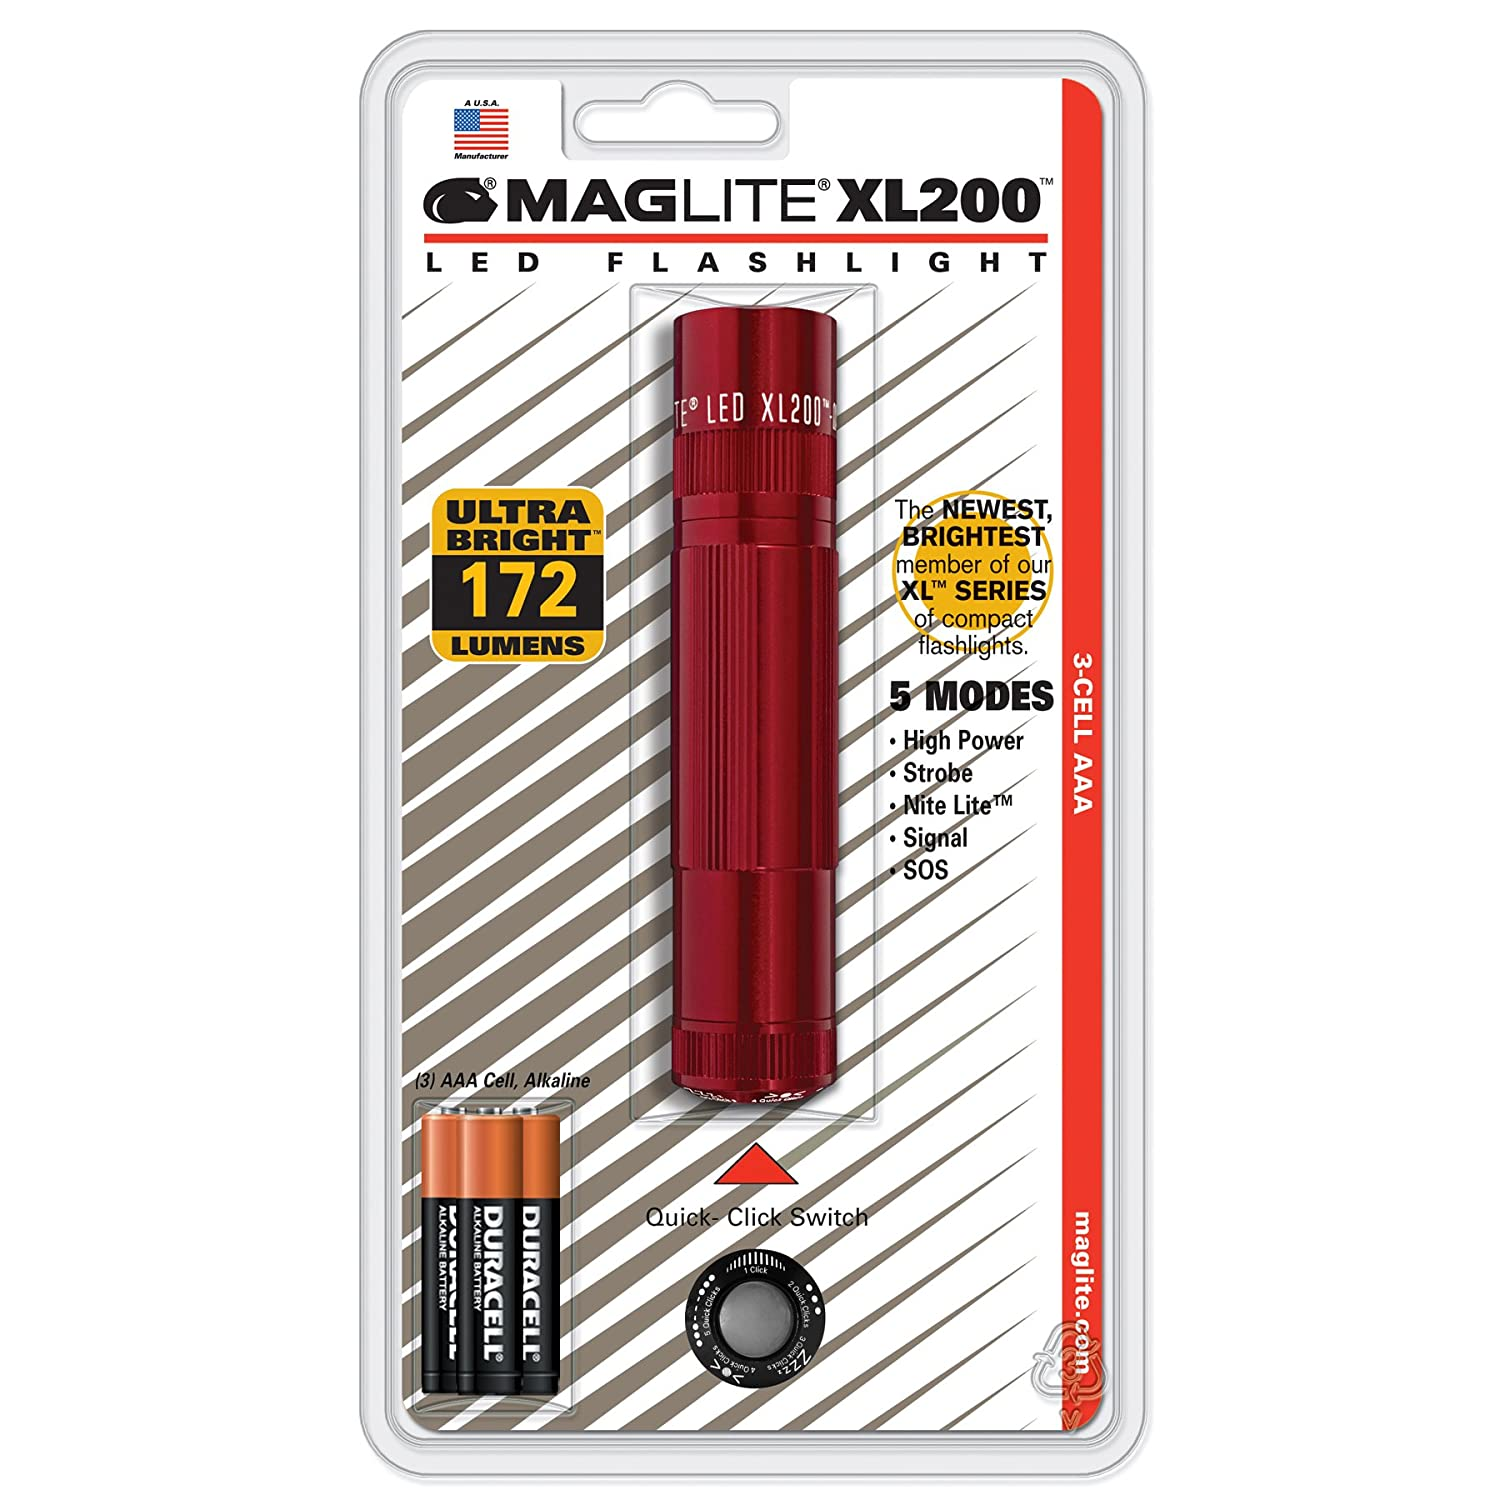 Maglite XL 200 Reviews